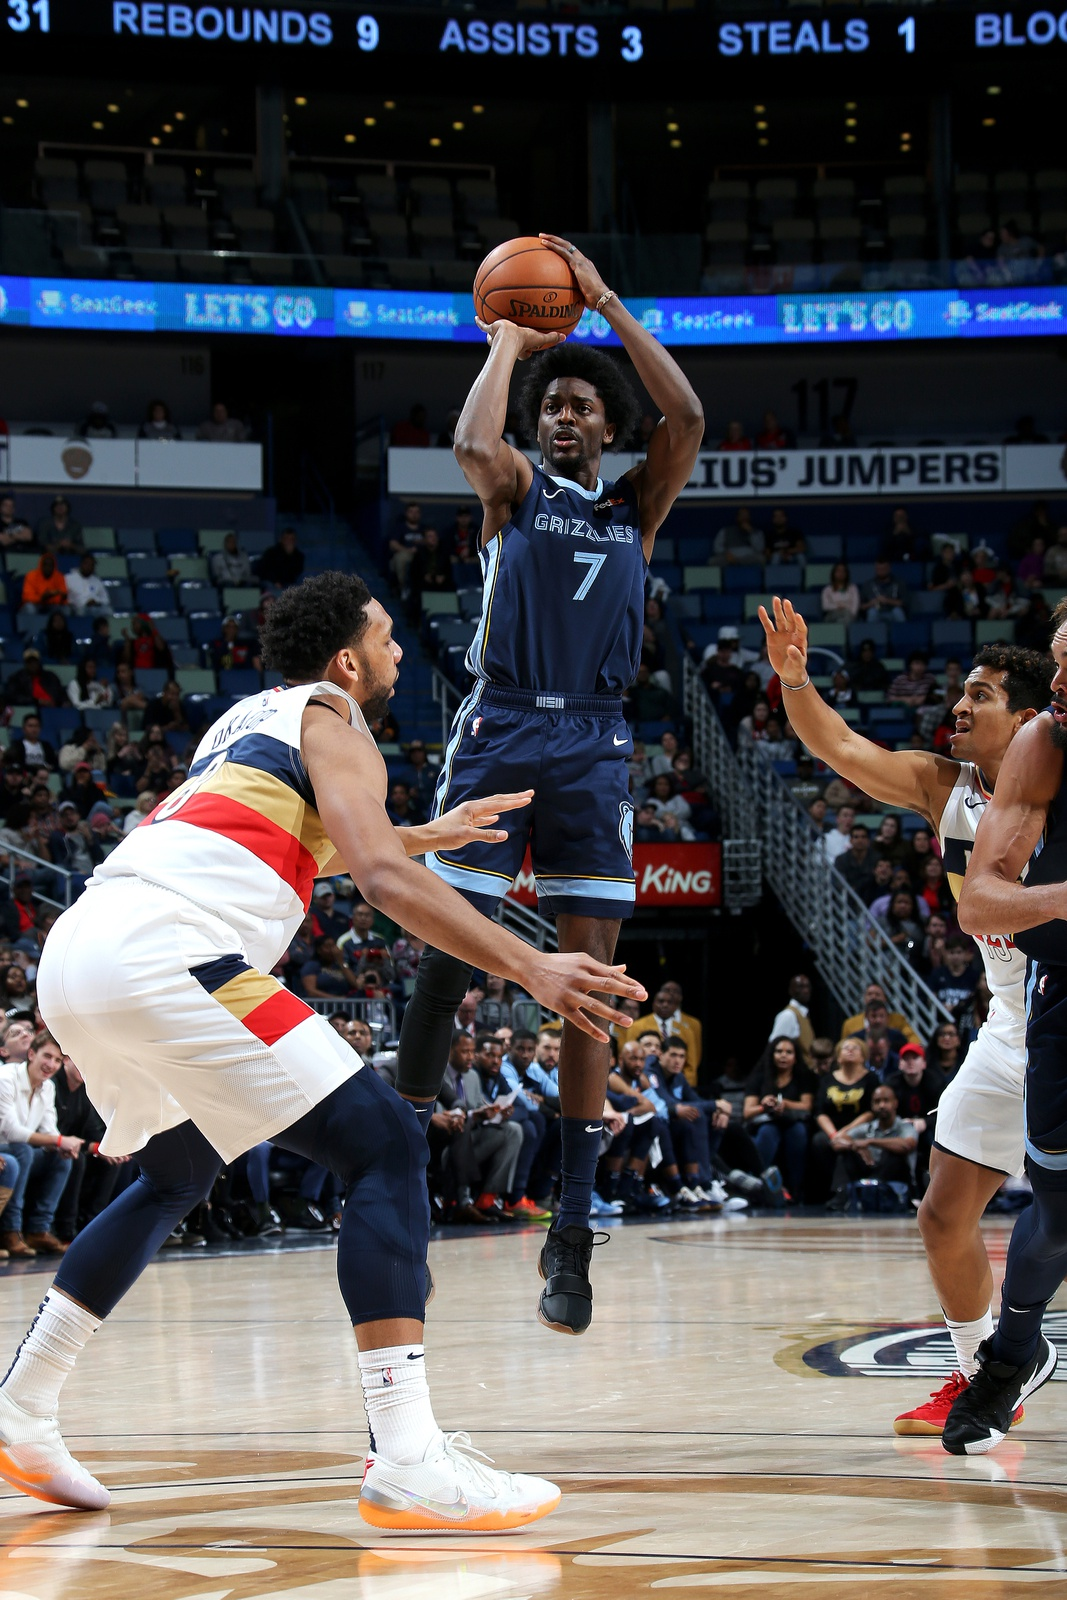 Justin Holiday #7 of the Memphis Grizzlies shoots the ball against the New Orleans Pelicans on January 7, 2019 at the Smoothie King Center in New Orleans, Louisiana.